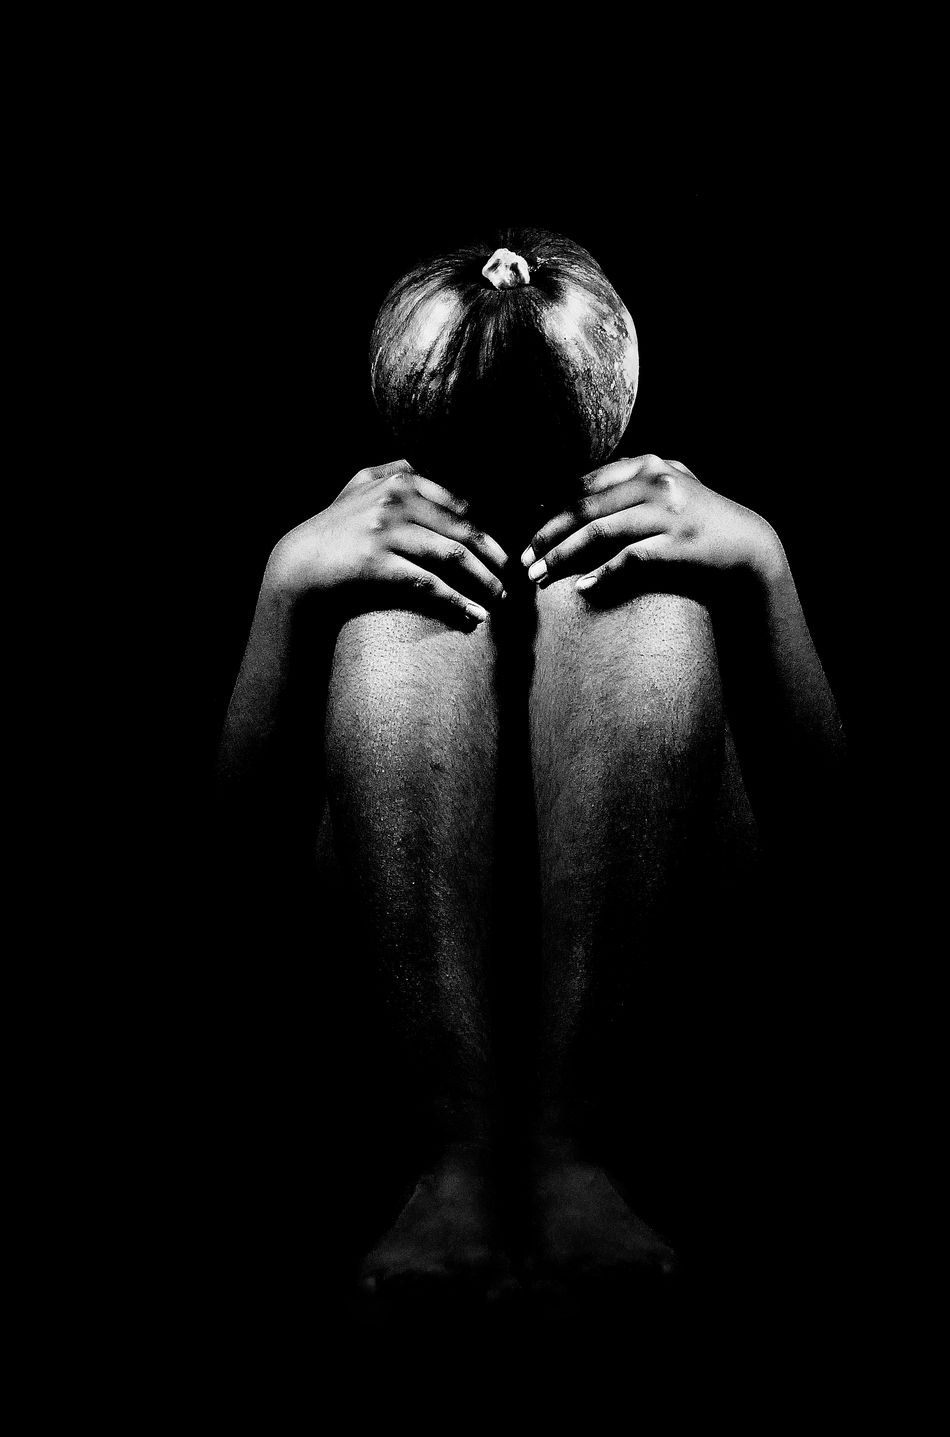 An Absurd Thought AbstractAbsurd Thoughts Alone Black And White Concept Creativity Idea Ideas Mood Person Portrait studio Fine Art Photography